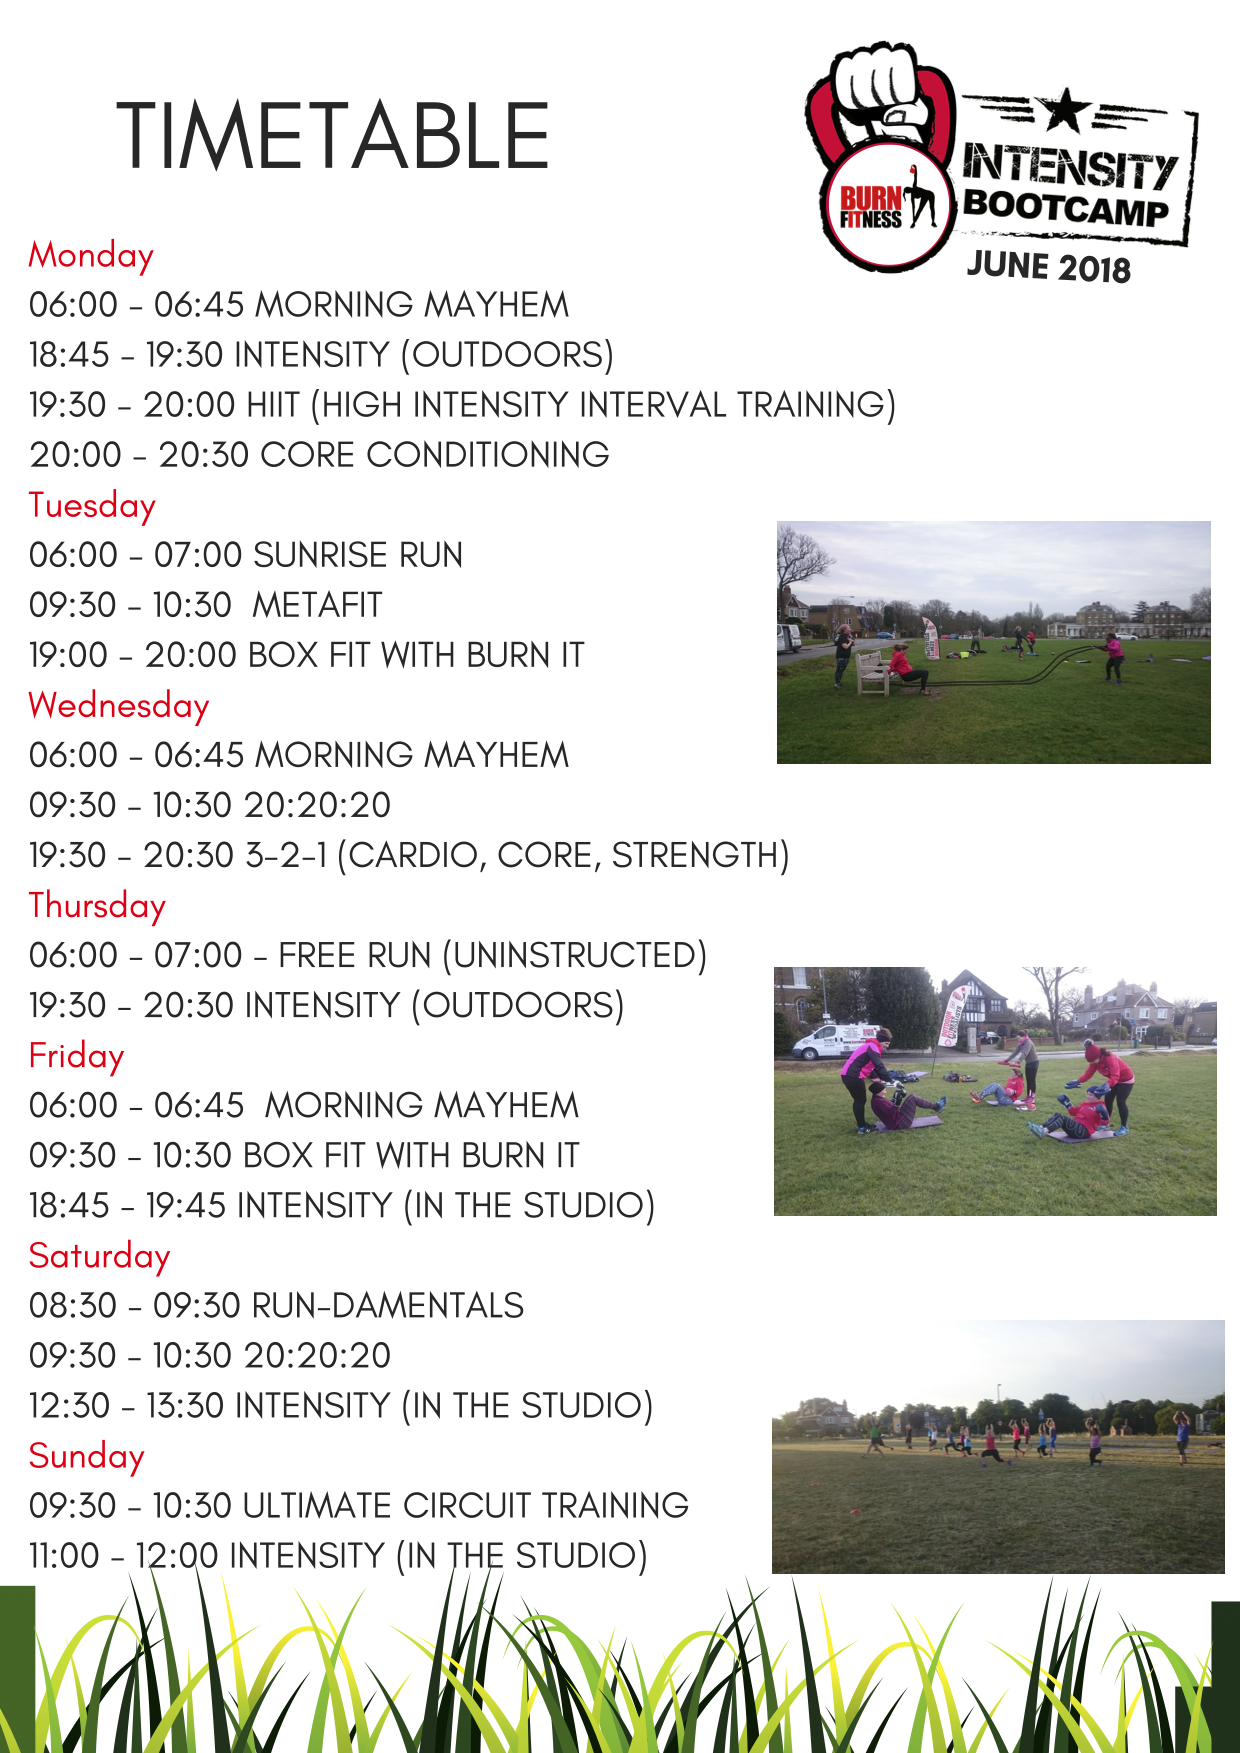 Intensity Bootcamp Blackheath